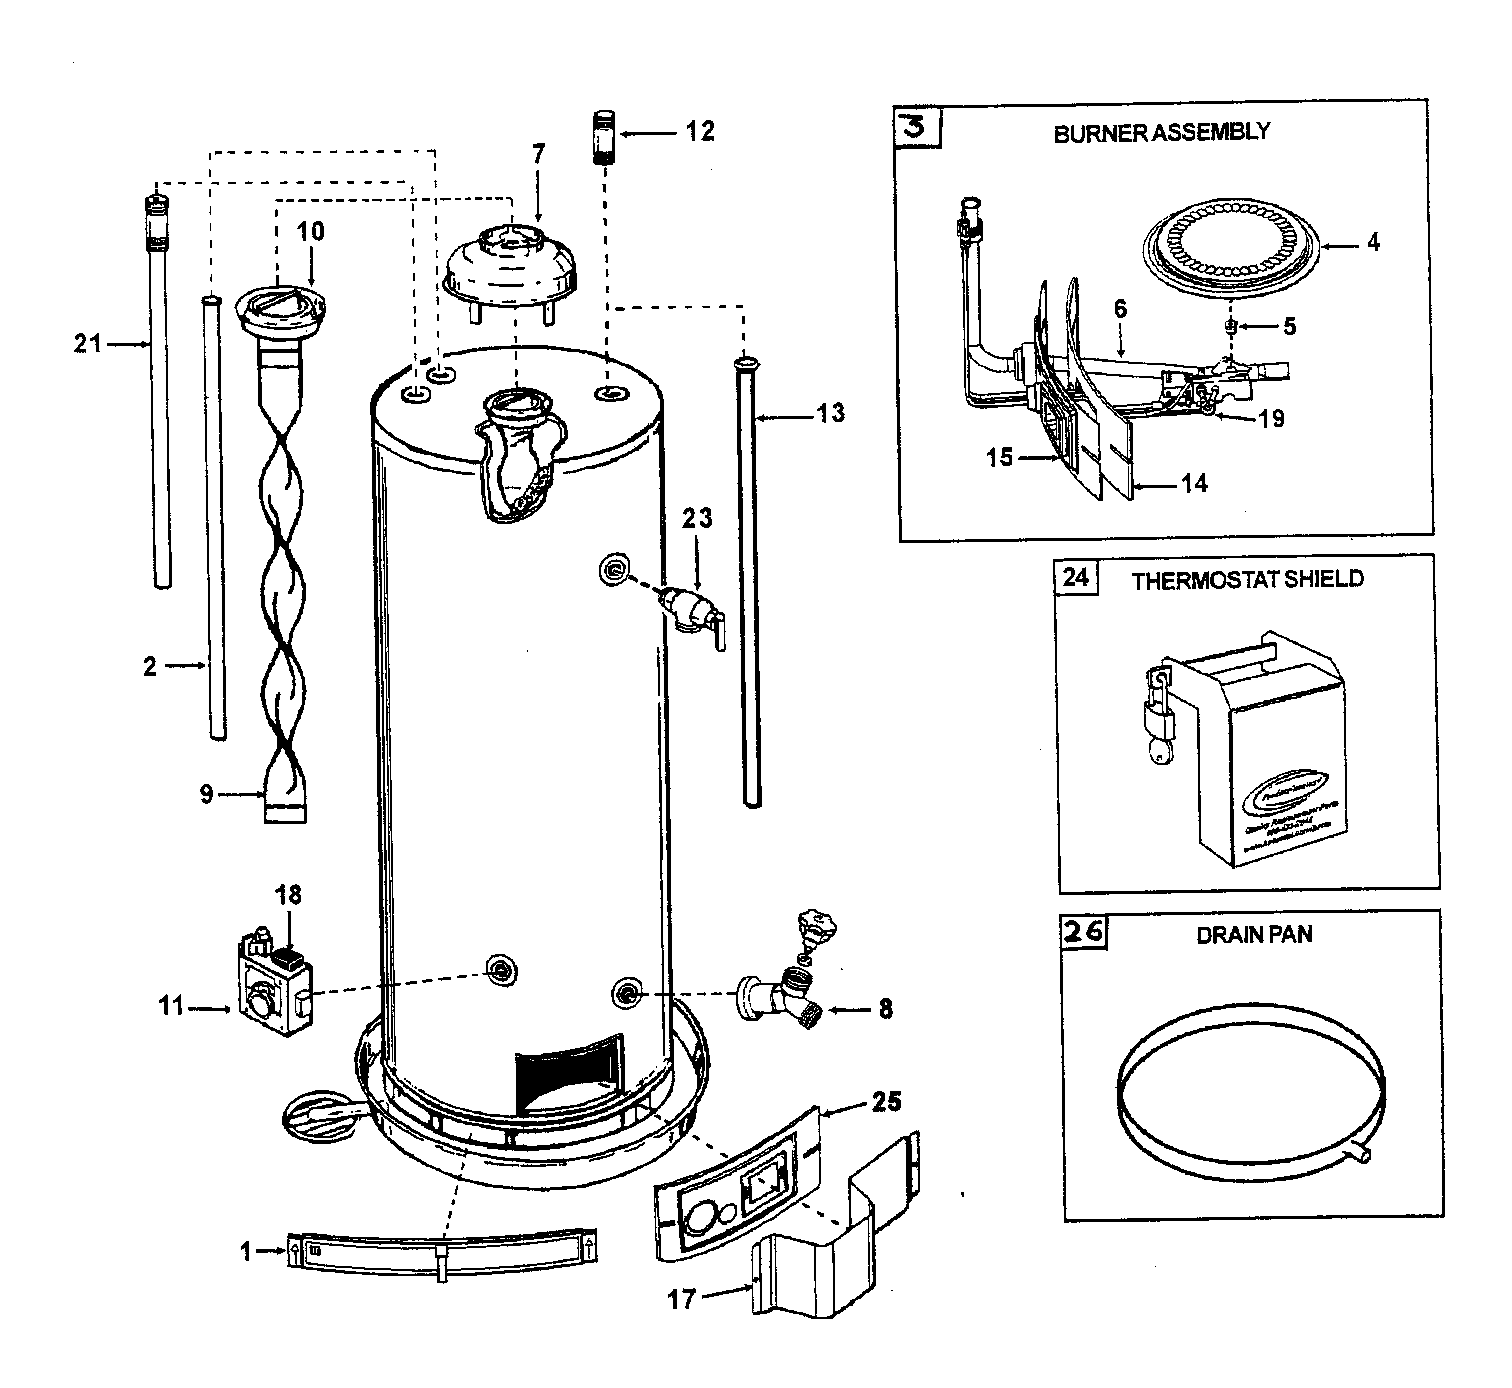 WATER HEATER Diagram & Parts List for Model XCVT40 Aosmith